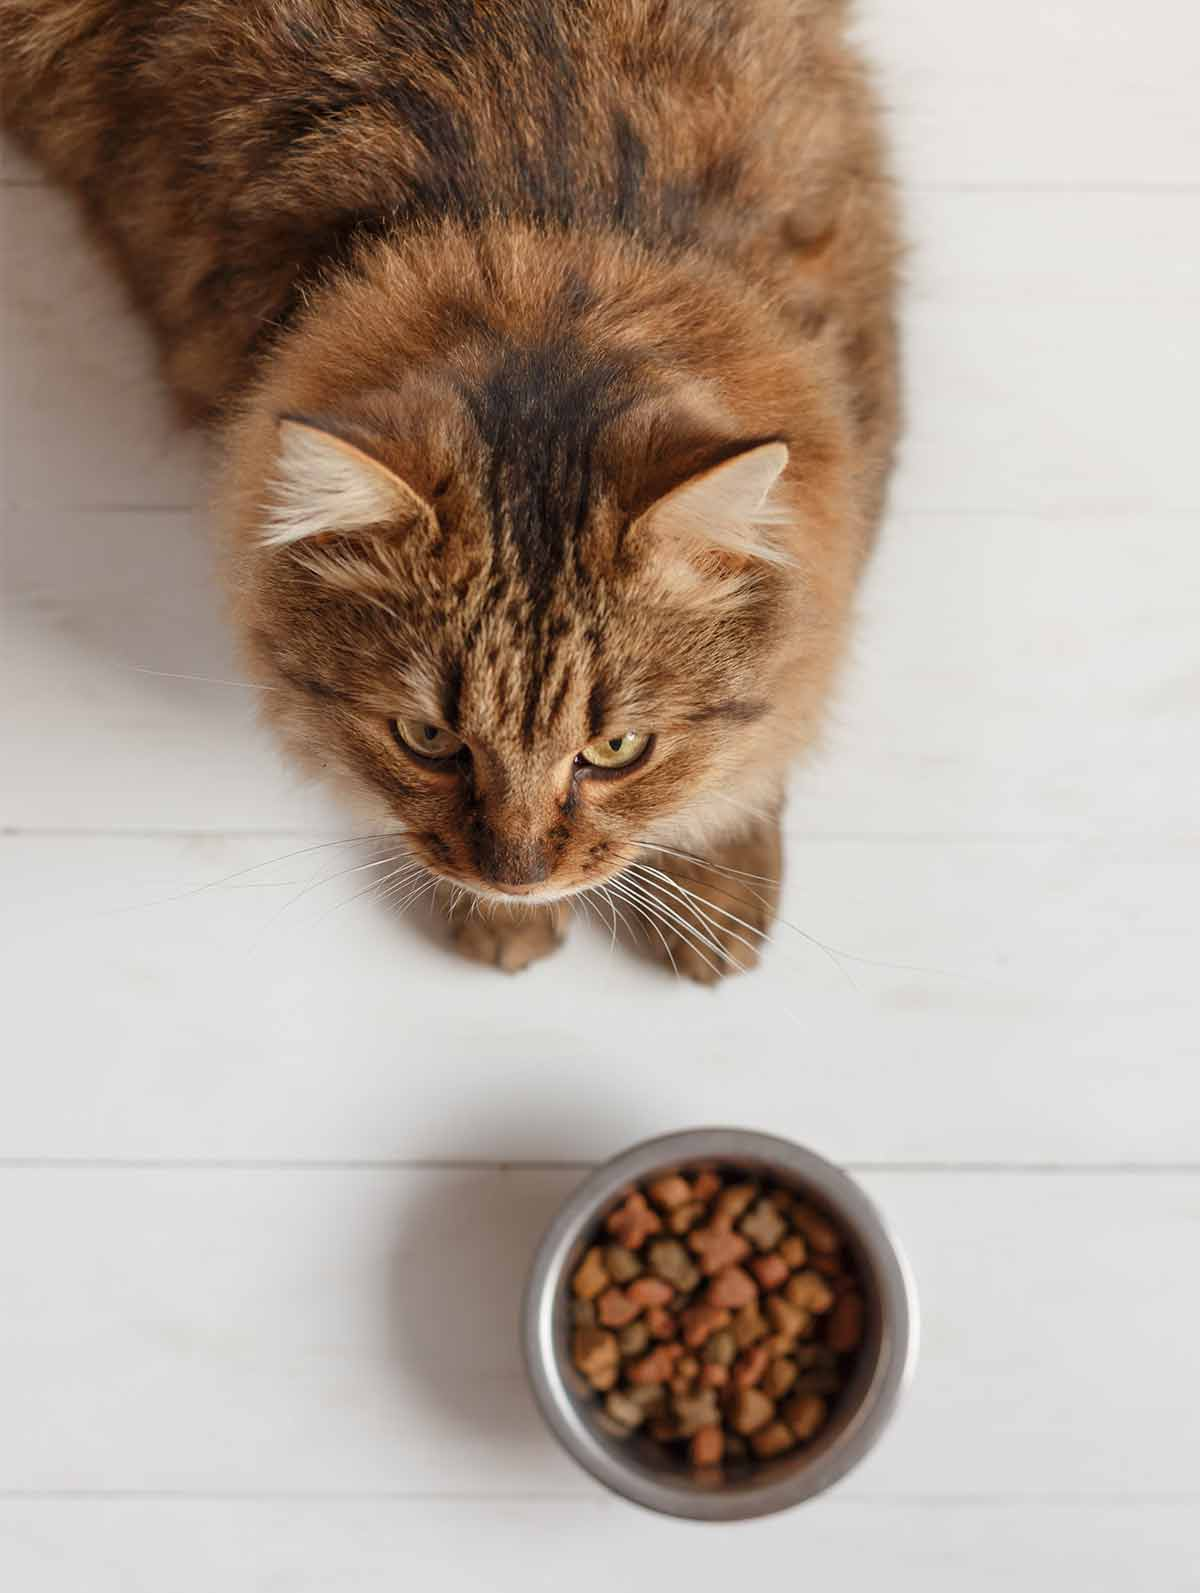 Best Dry Cat Food For Picky Cats